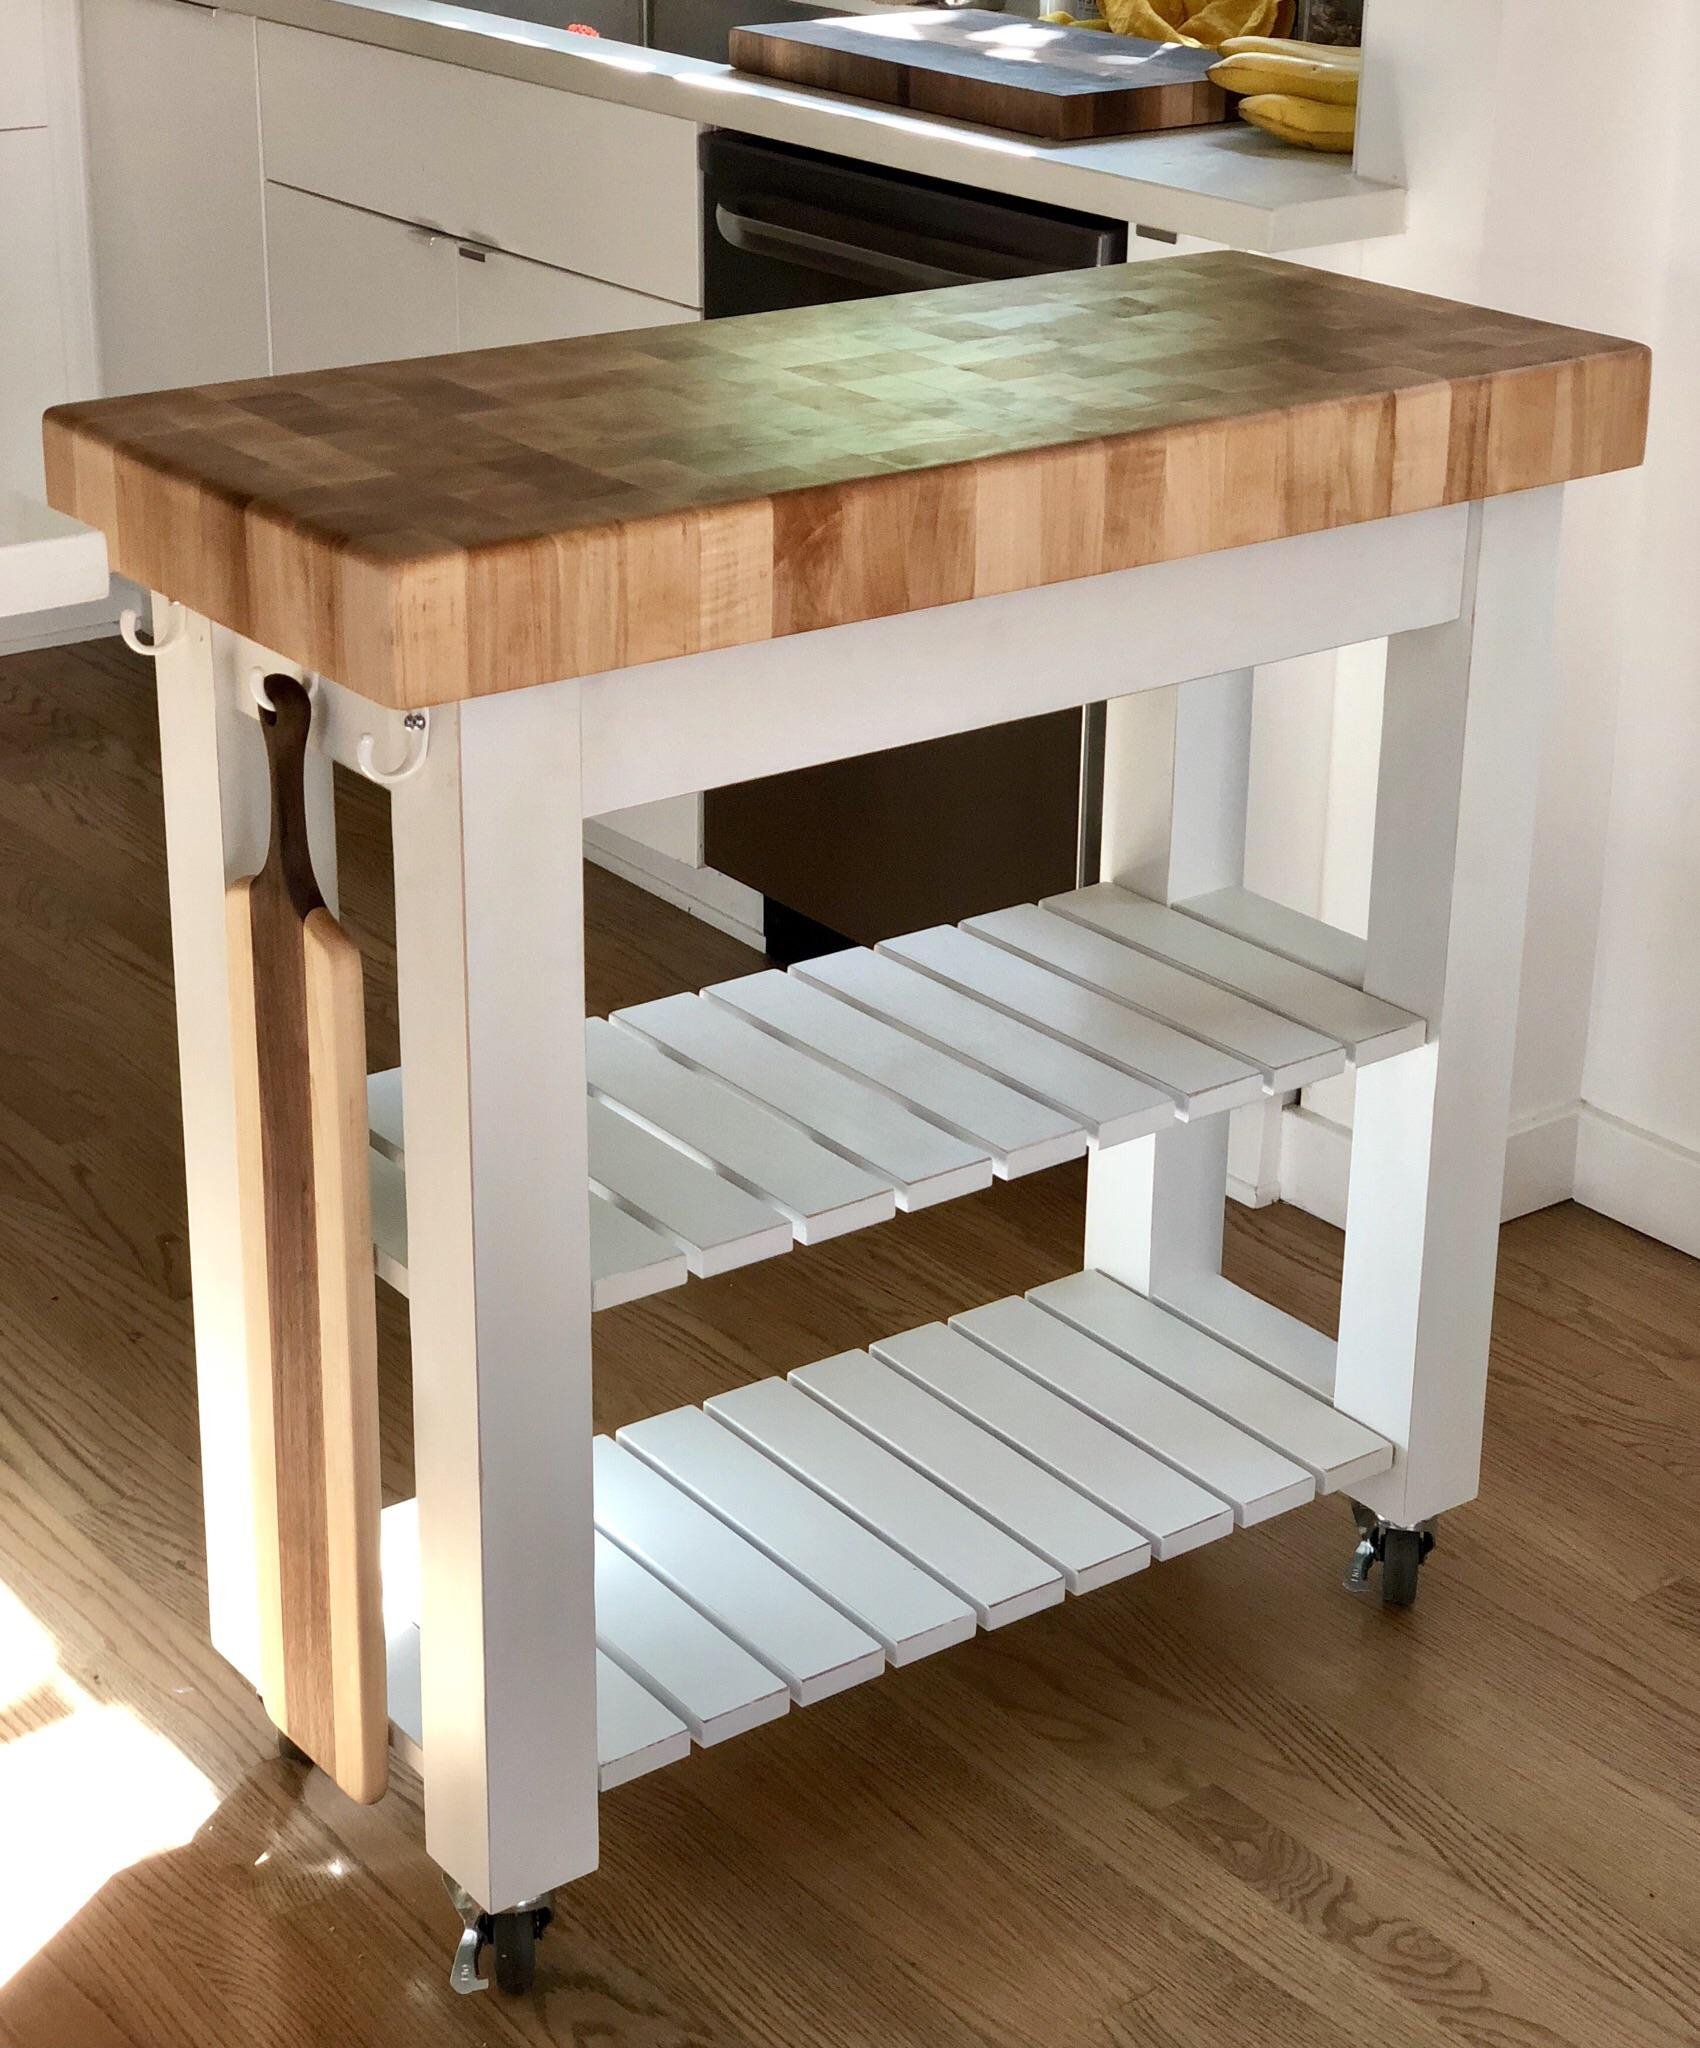 Maple Kitchen Island Butcher Block With A Hidden Drawer In Within Most Popular Elworth Kitchen Island (View 10 of 25)